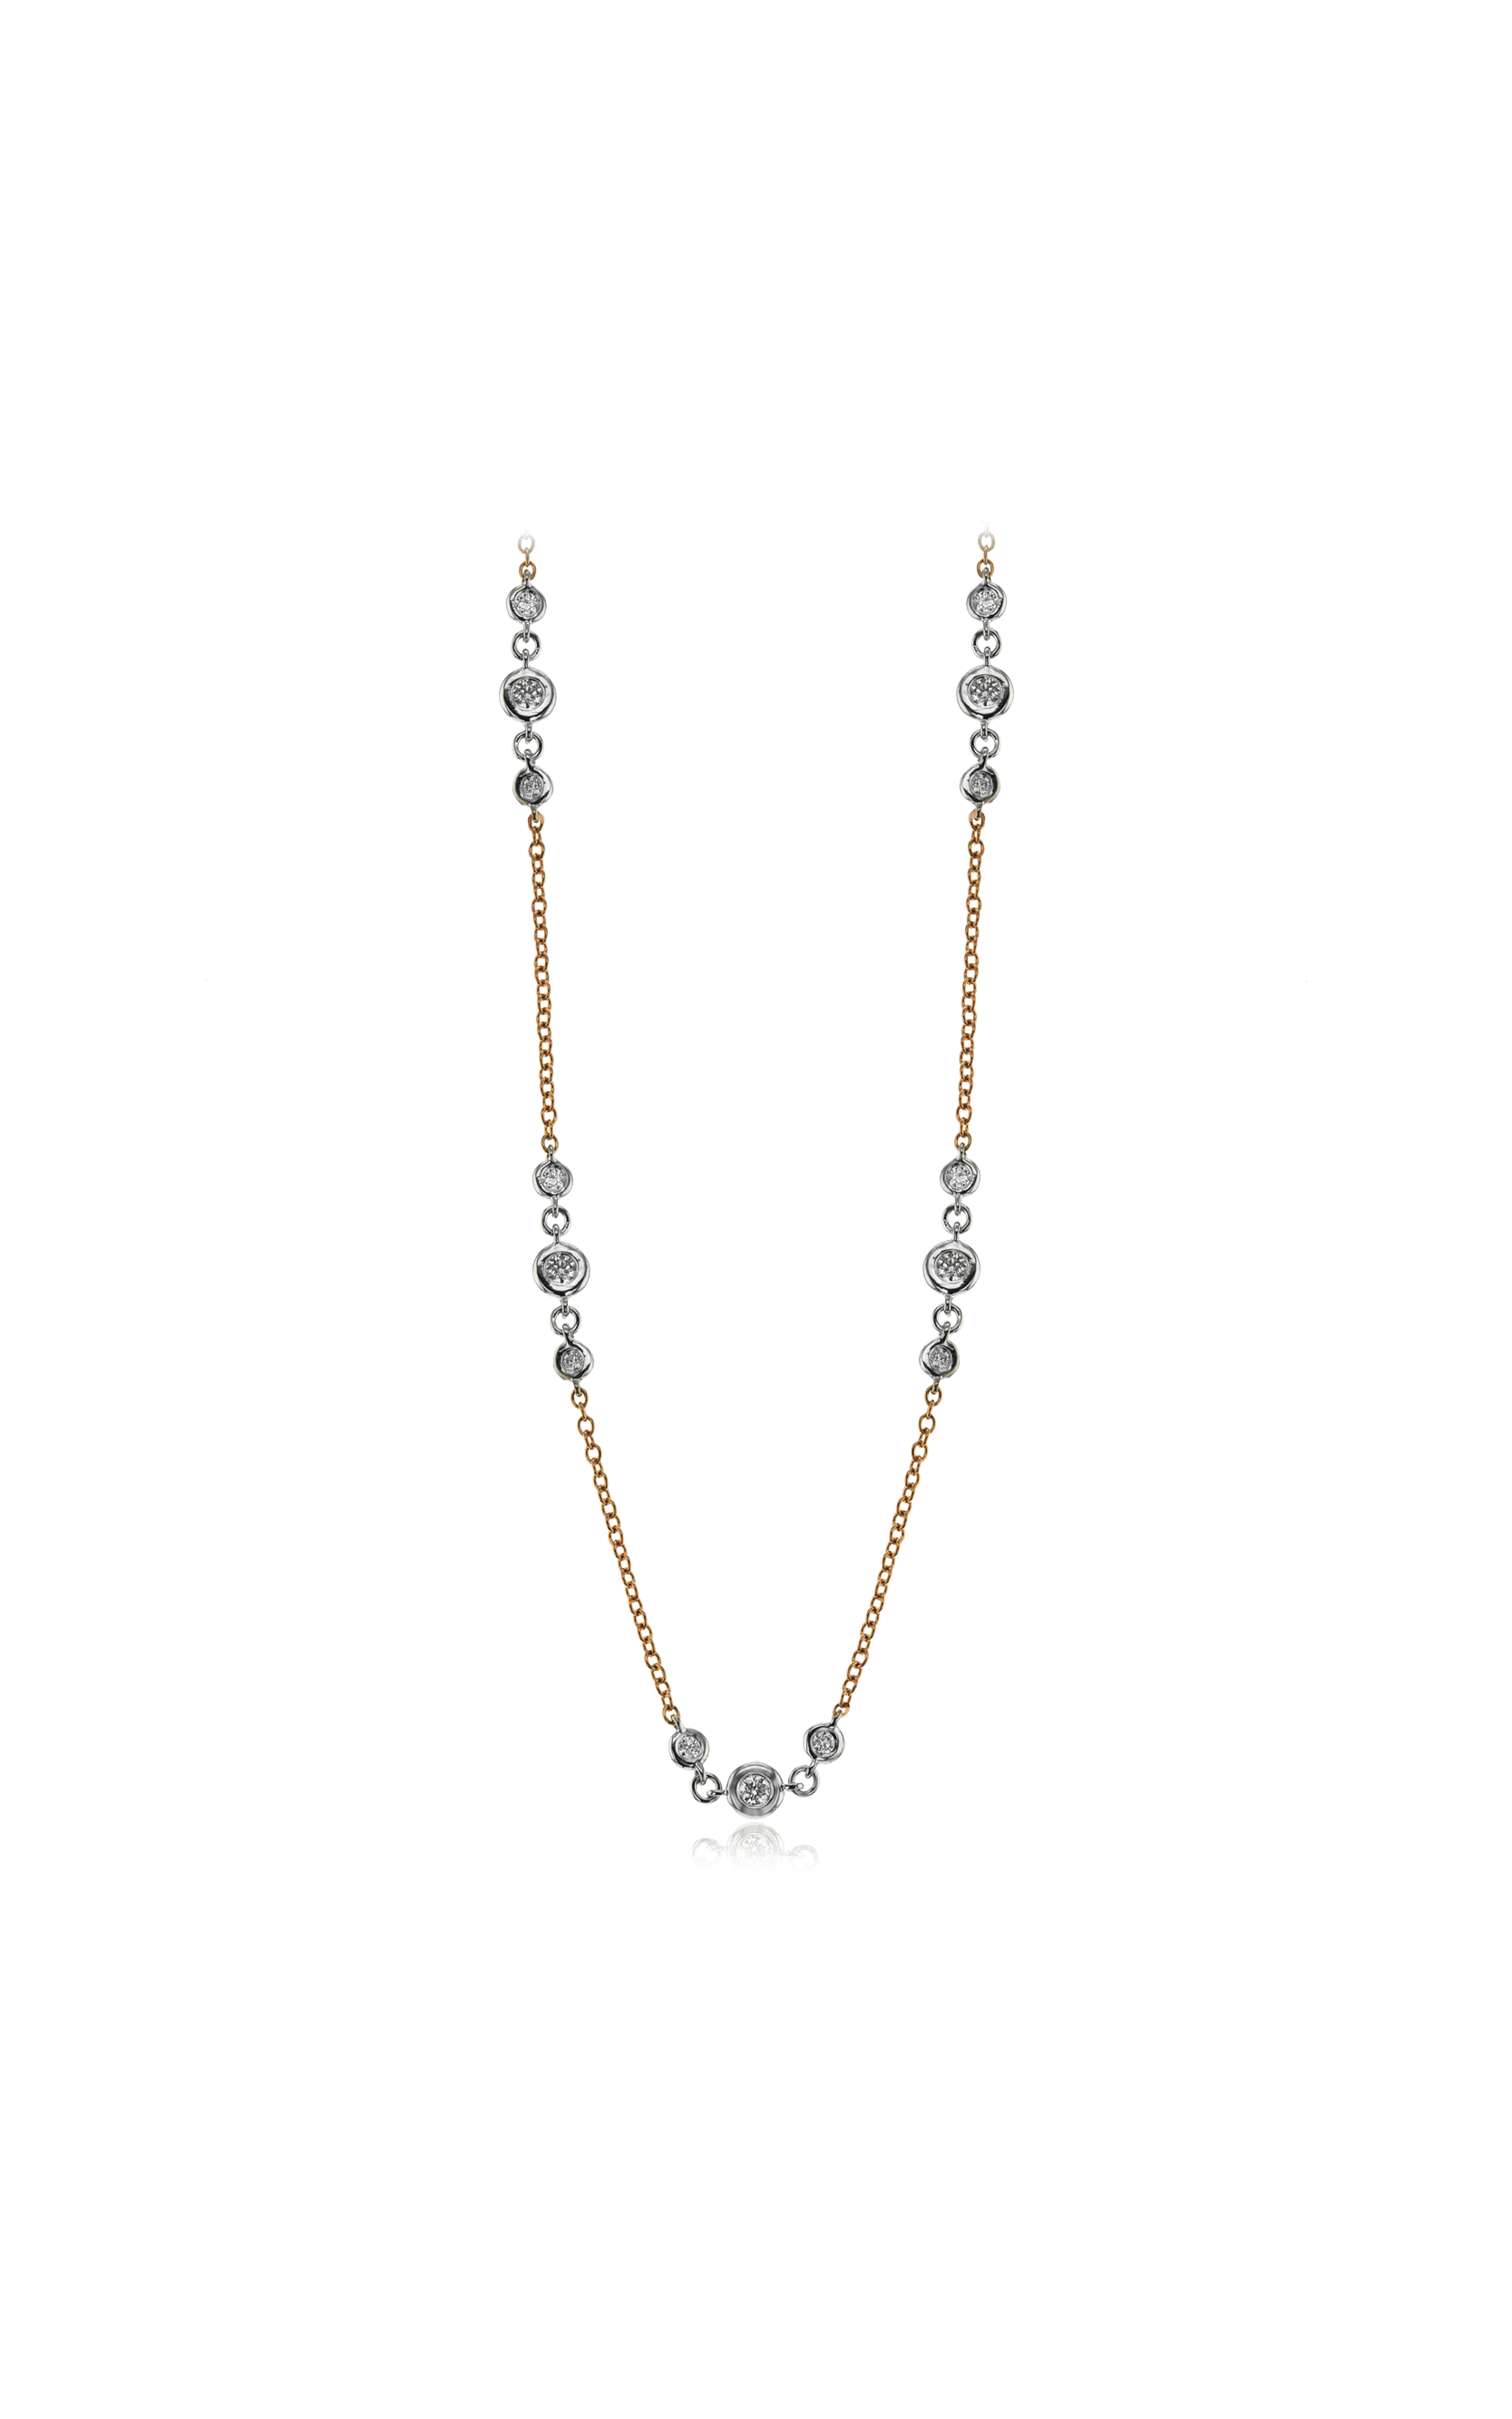 Simon G Modern Enchantment Necklaces CH112 product image